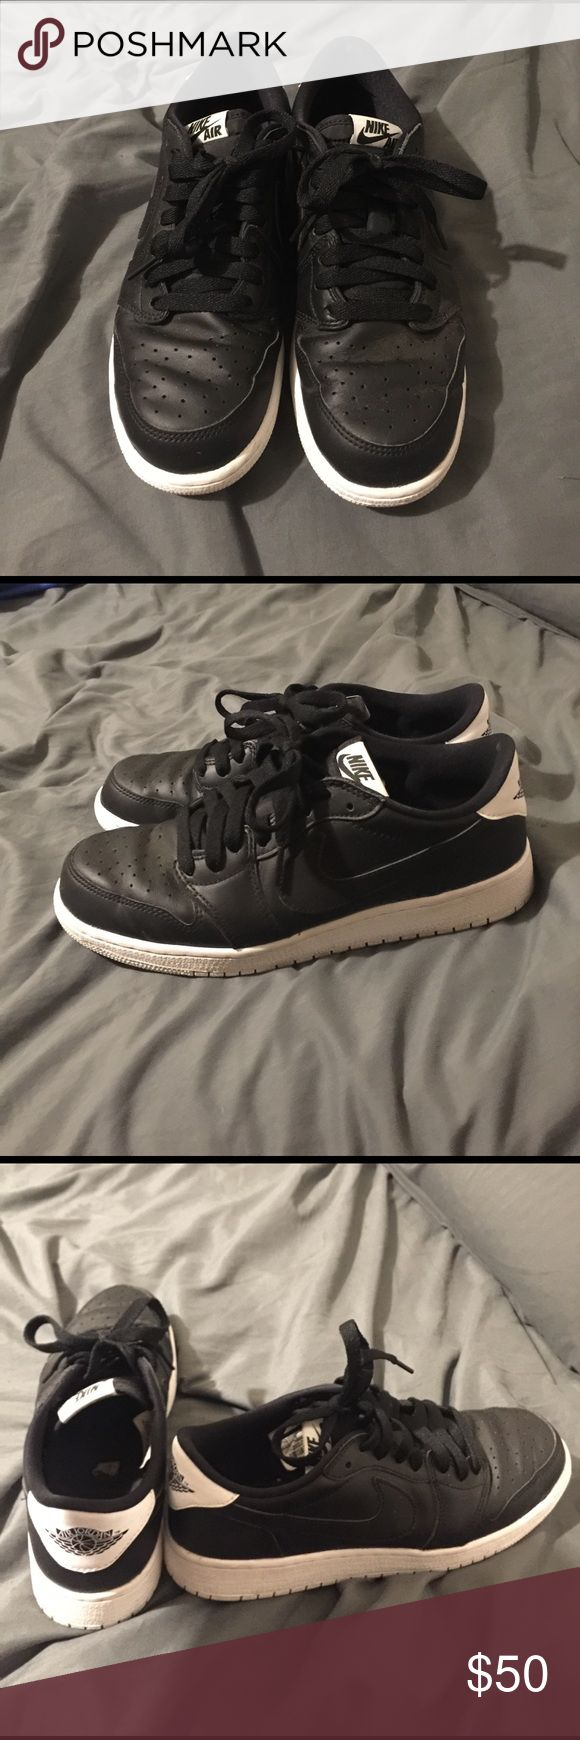 Nike Air Jordan 1 Low Grade School Pair of Air Jordan 1 Lows in EUC. Only wore a handful of times. They are Size 7Y which is the equivalent of a women's 9. Awesome shoes, but I just never wear them. Hoping to send them to a good home! Jordan Shoes Athletic Shoes